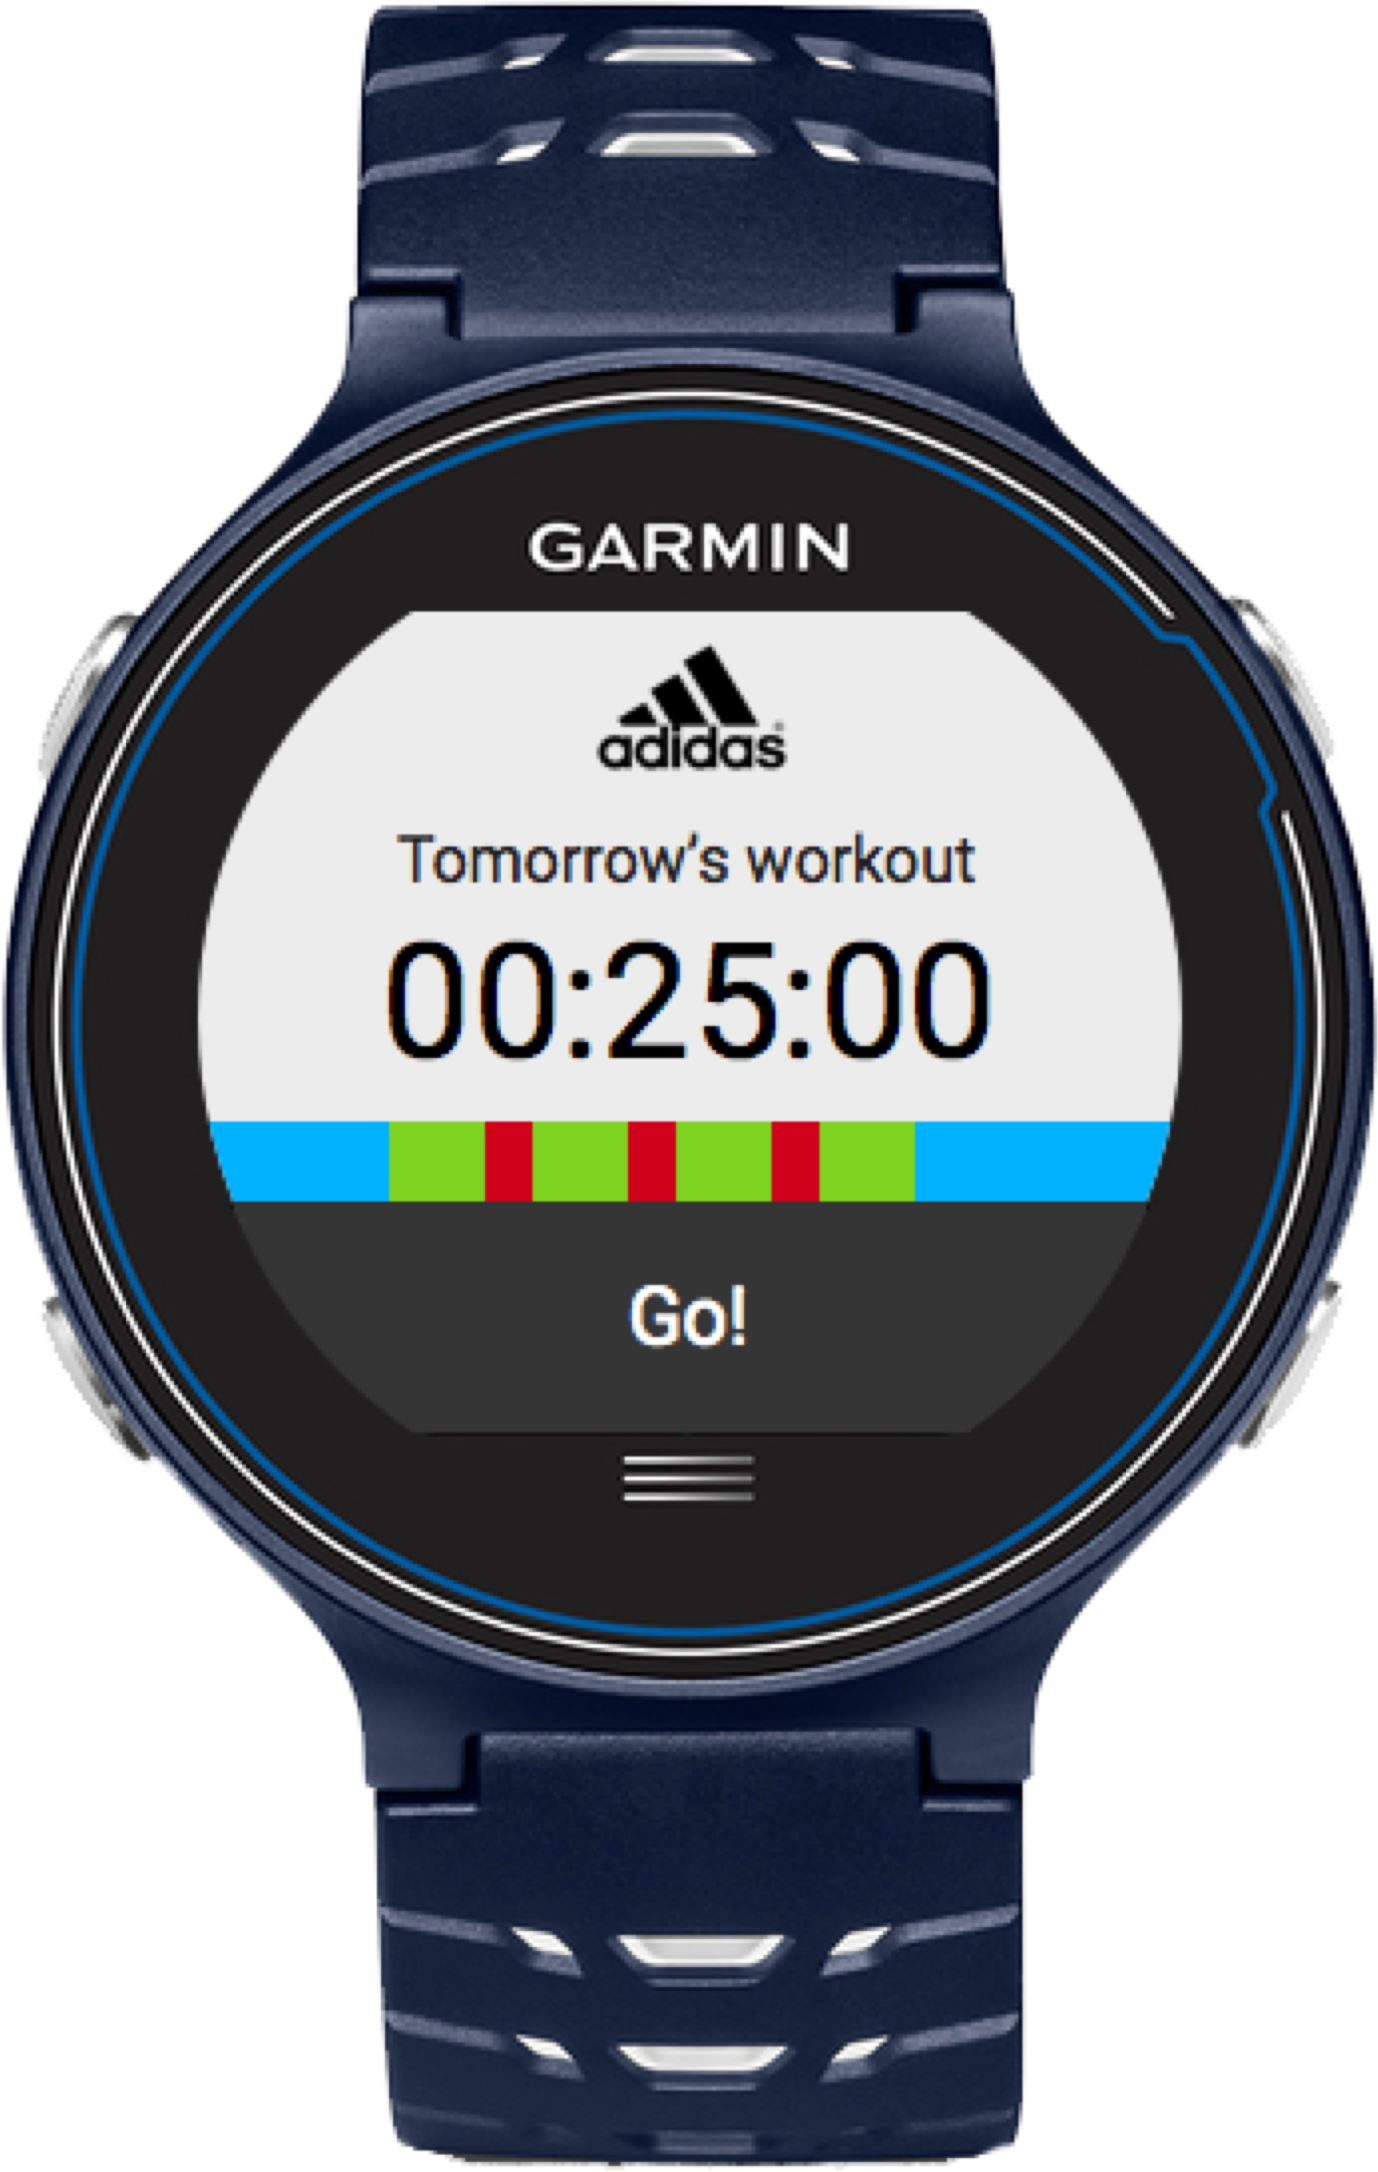 Watch with adidas app